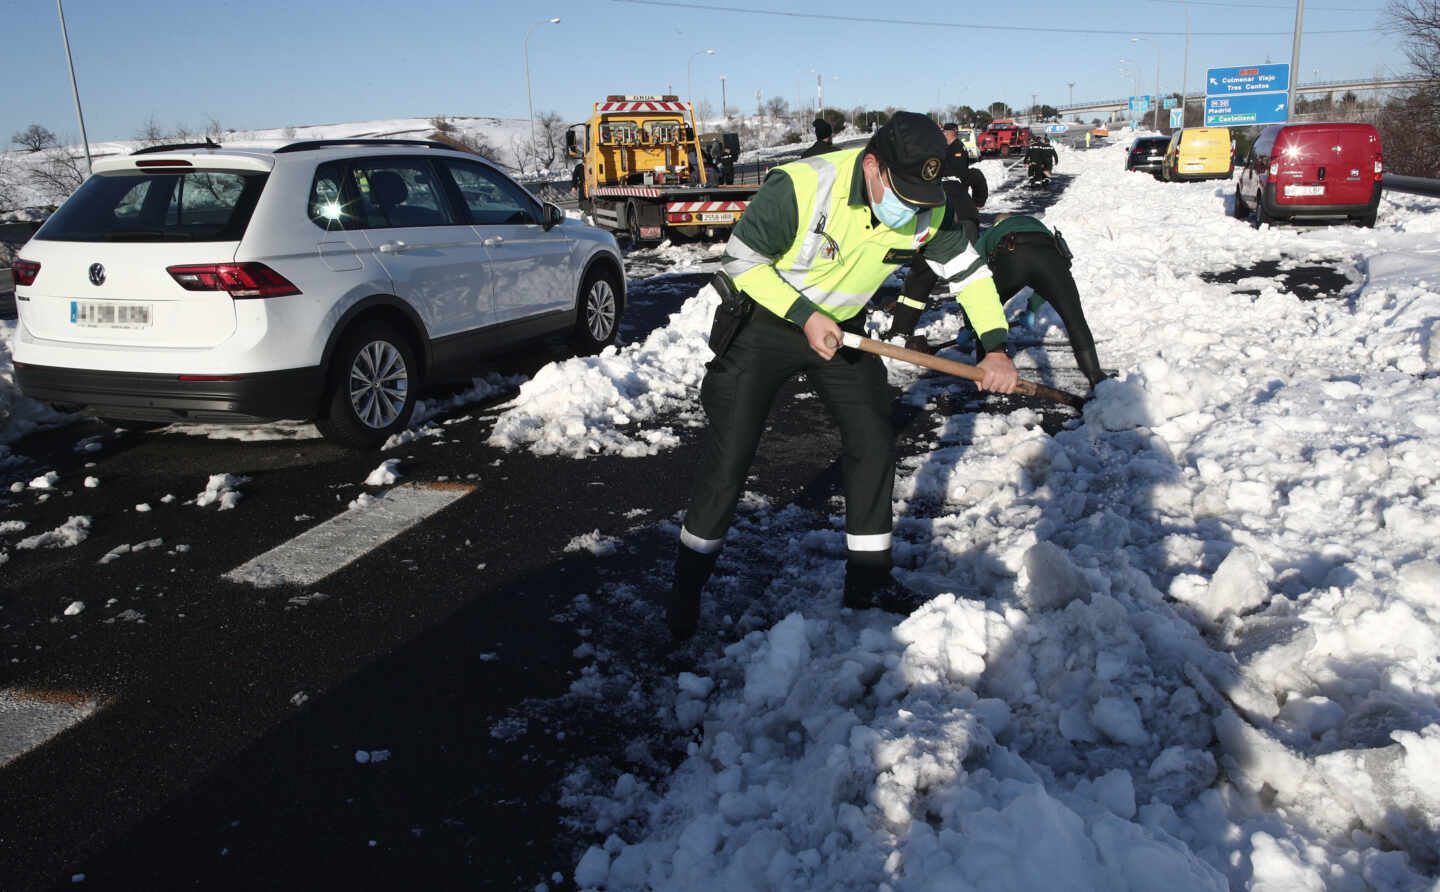 rescate-guardiacivil-nieve